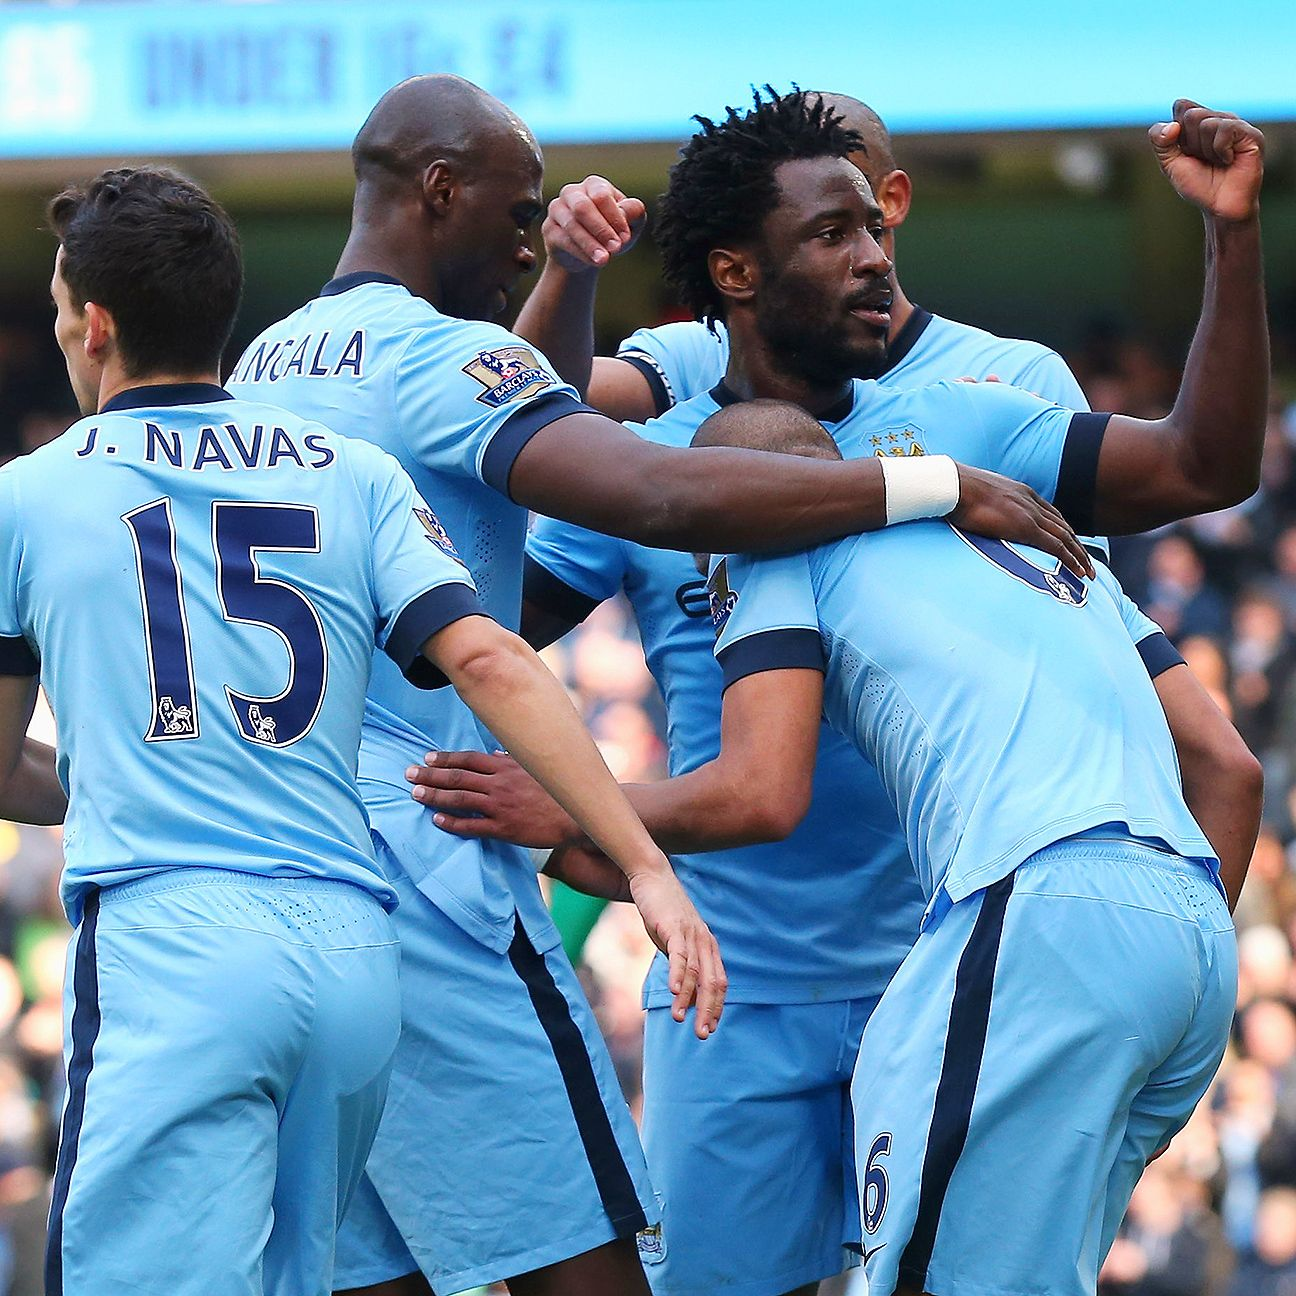 Unlike past decades, since 2010 Manchester City have been consistently finishing near or at the top of the Premier League.